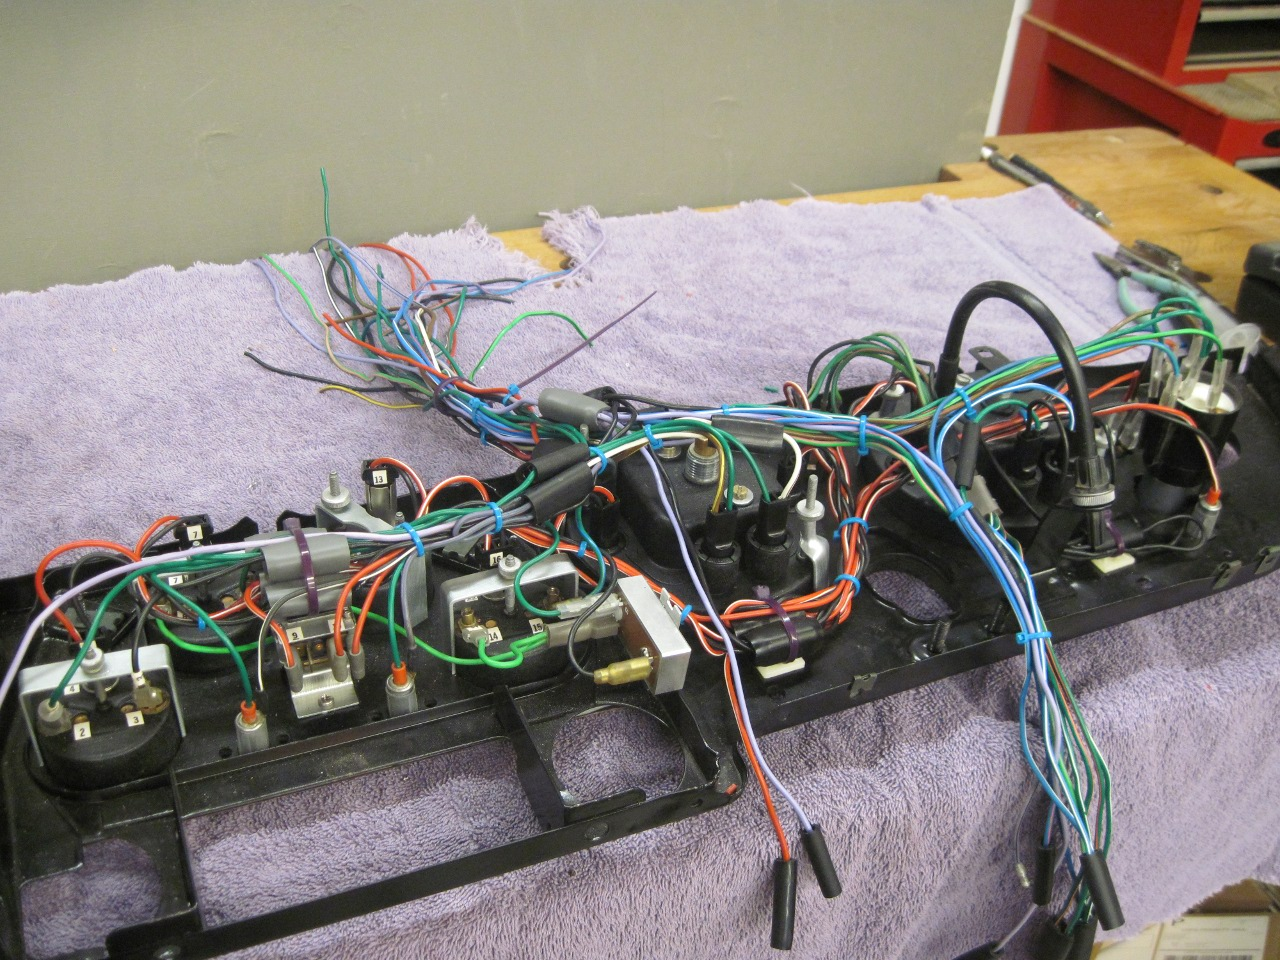 hight resolution of the wires coming from the top of the dash go to various other parts of the car